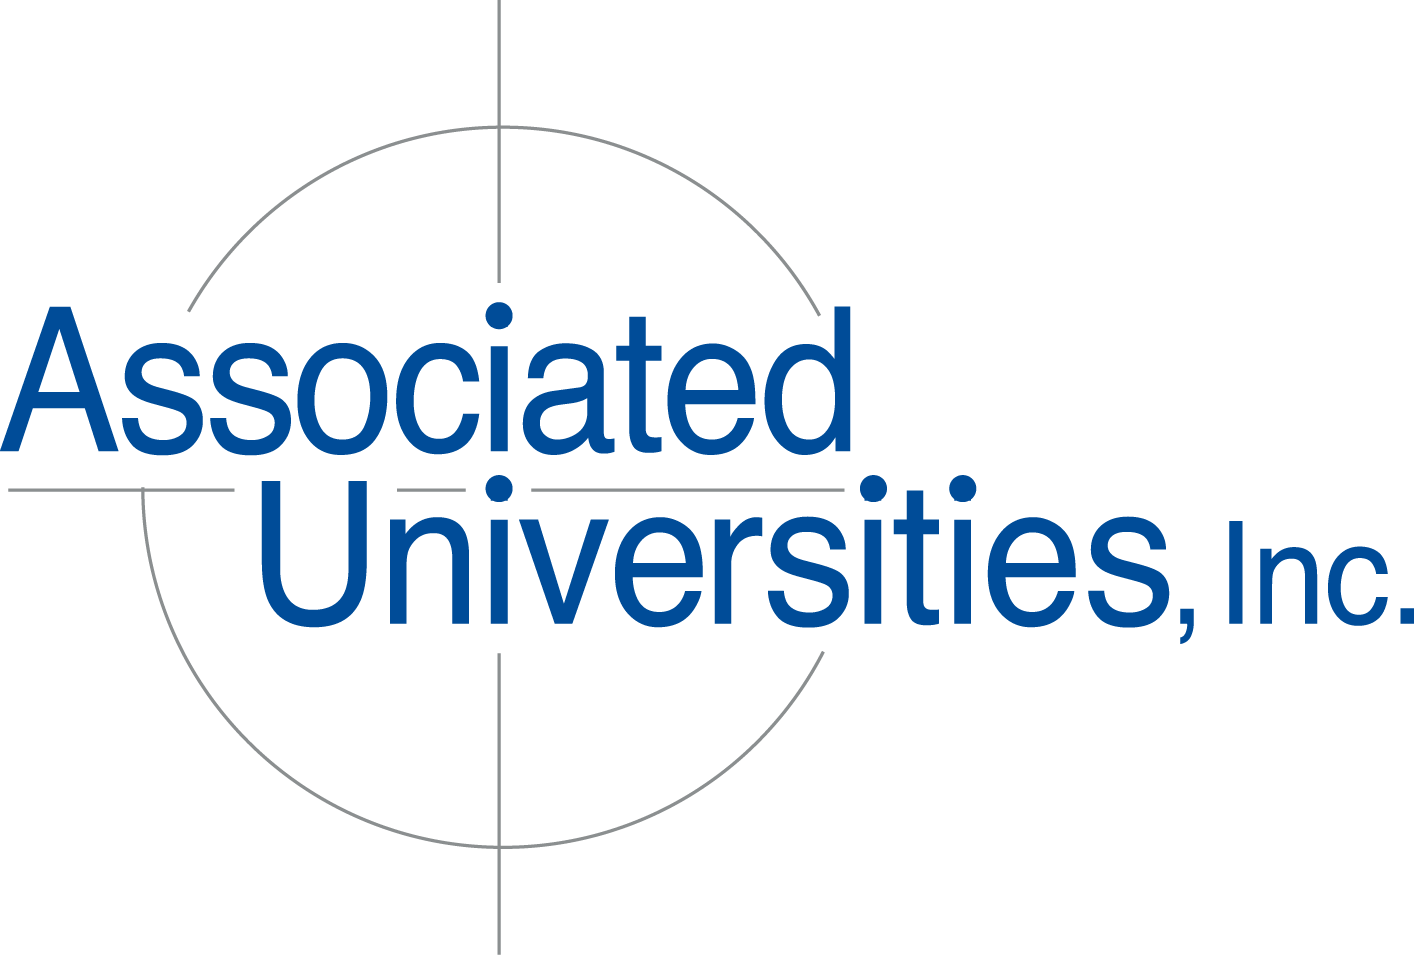 Associated Universities, Inc